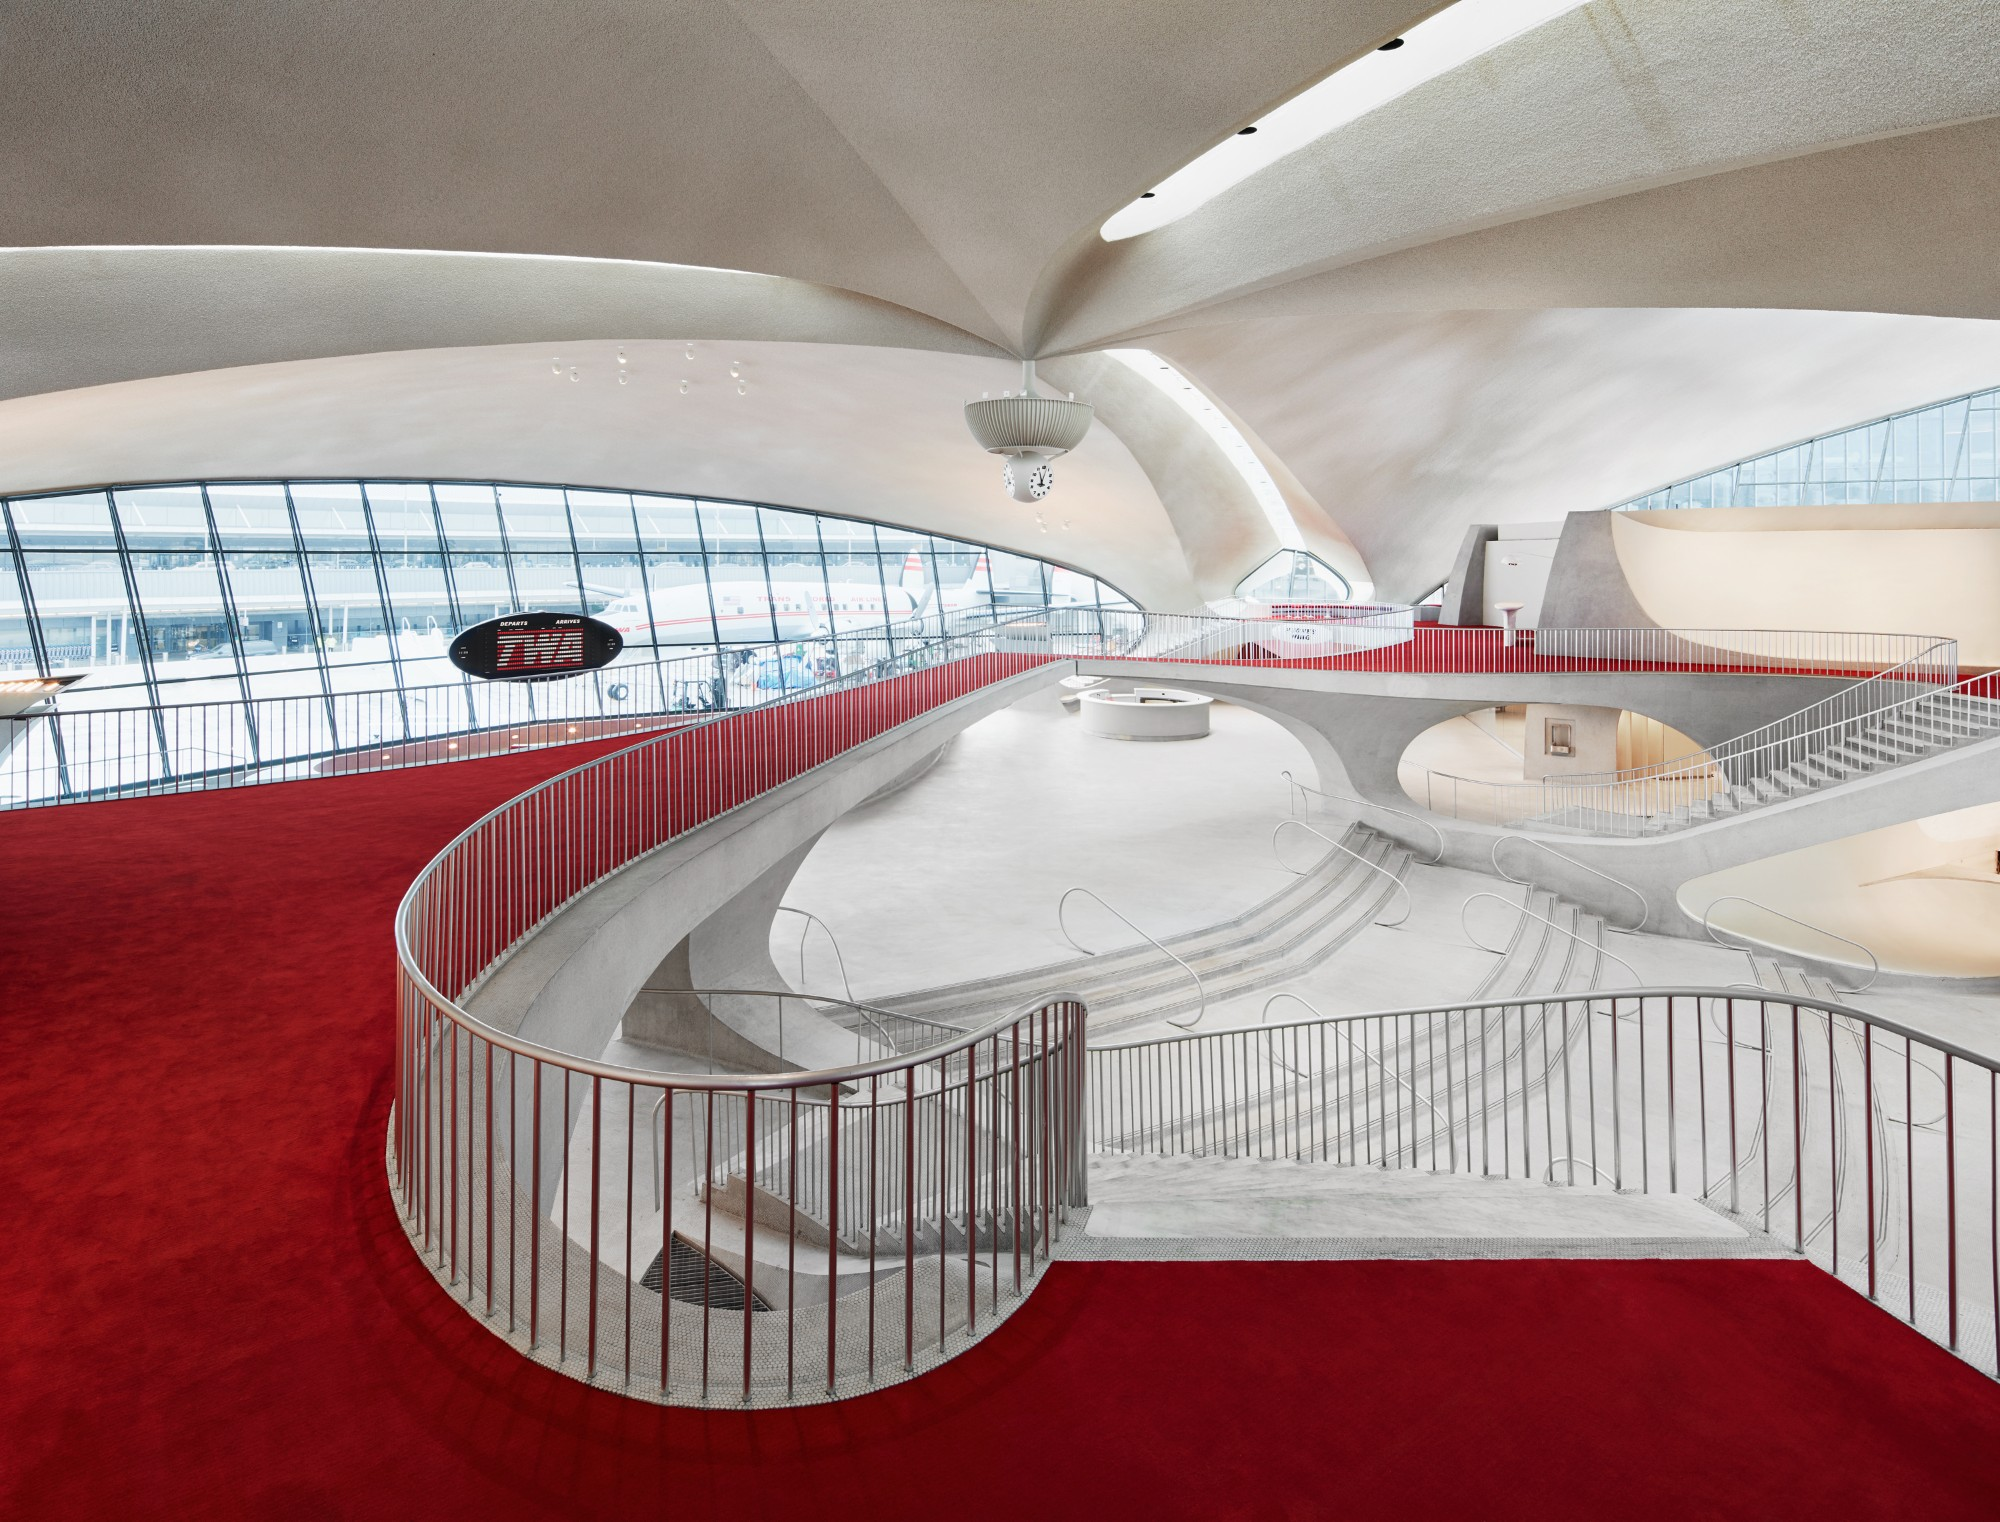 PHOTOS: The TWA Hotel at JFK is officially open!   6sqft